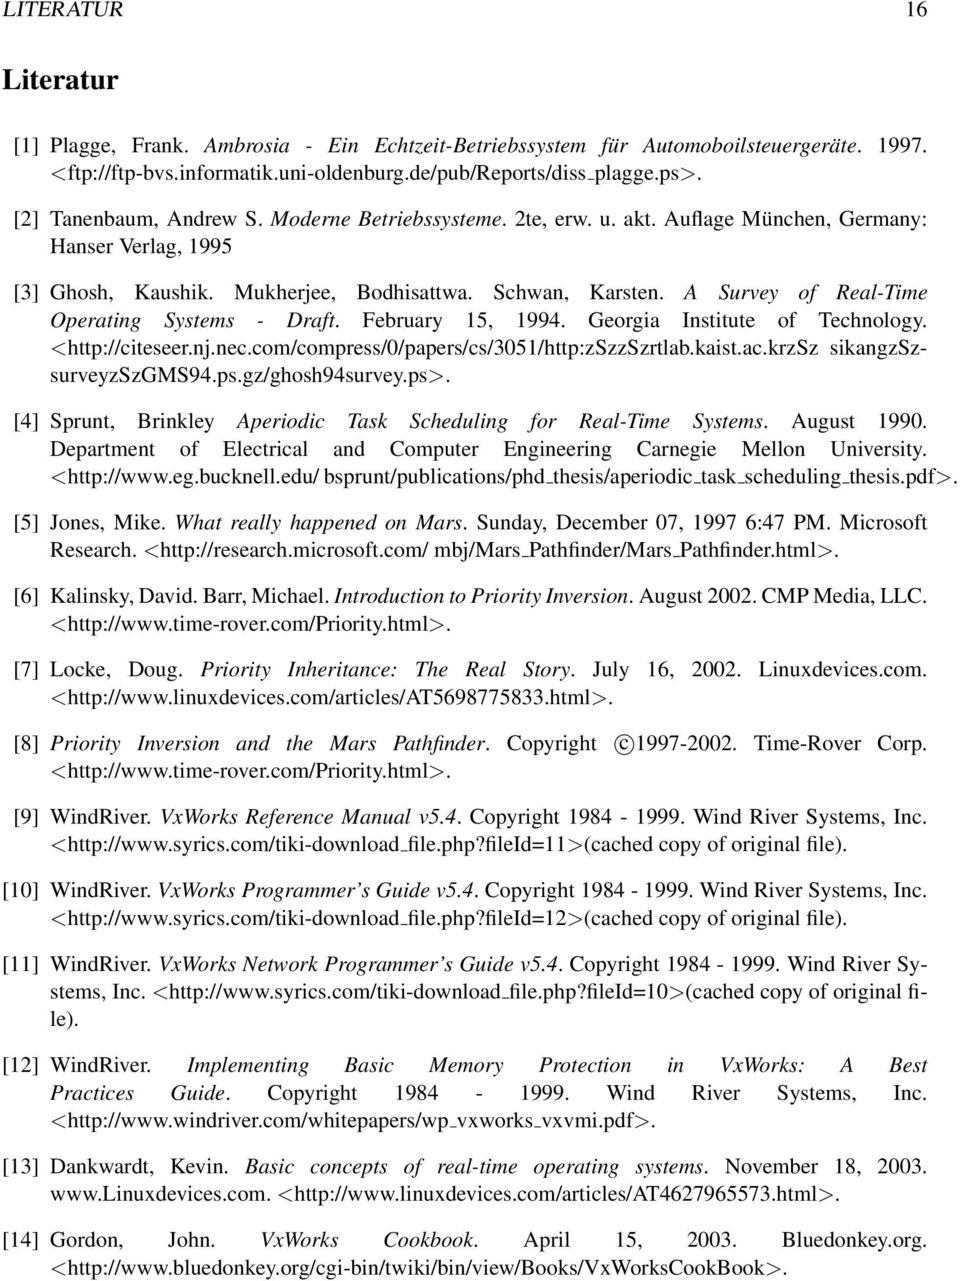 A Survey of Real-Time Operating Systems - Draft. February 15, 1994. Georgia Institute of Technology. <http://citeseer.nj.nec.com/compress/0/papers/cs/3051/http:zszzszrtlab.kaist.ac.